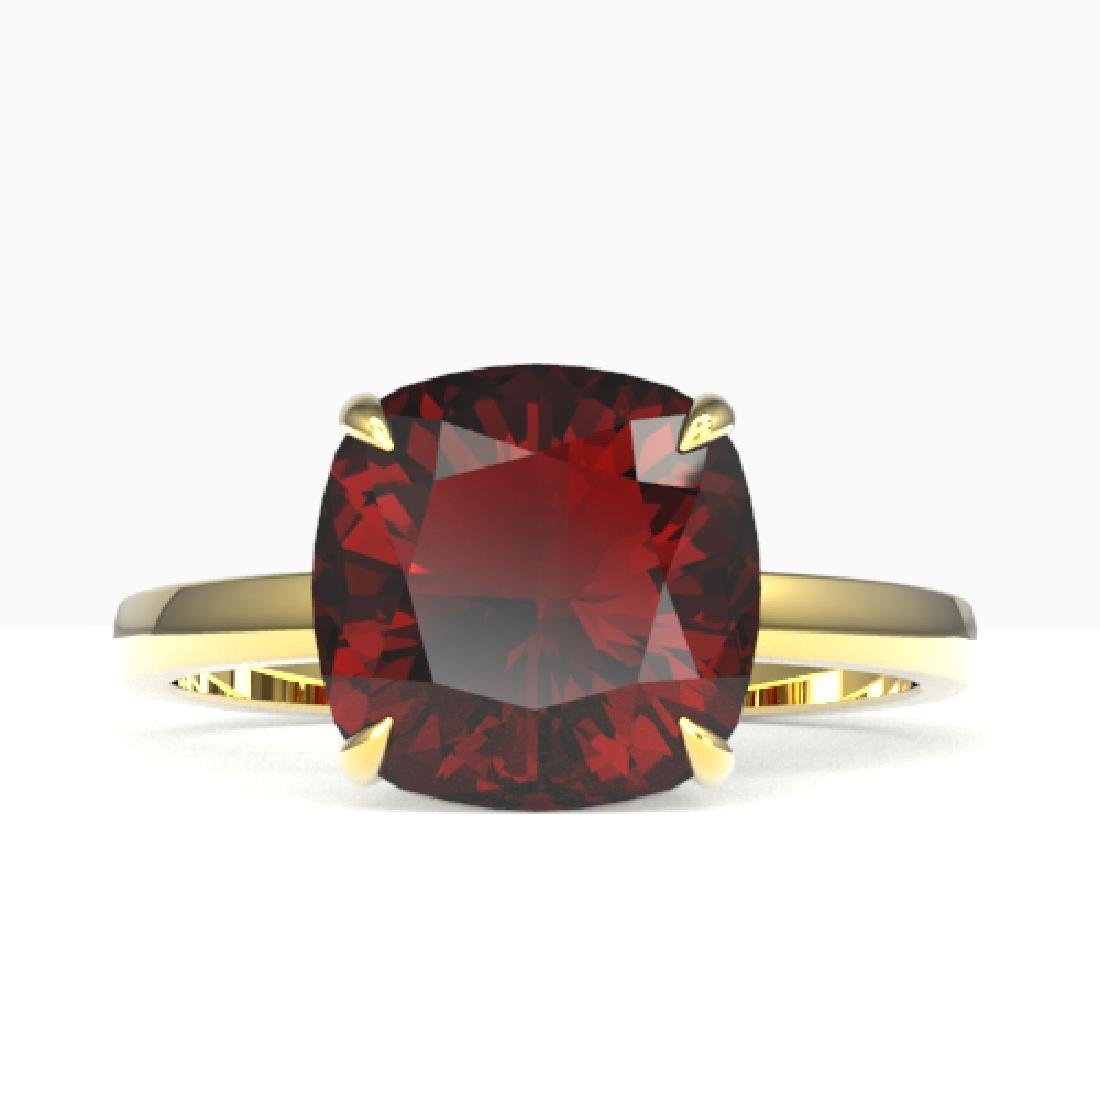 6 CTW Cushion Cut Garnet Inspired Solitaire Engagement